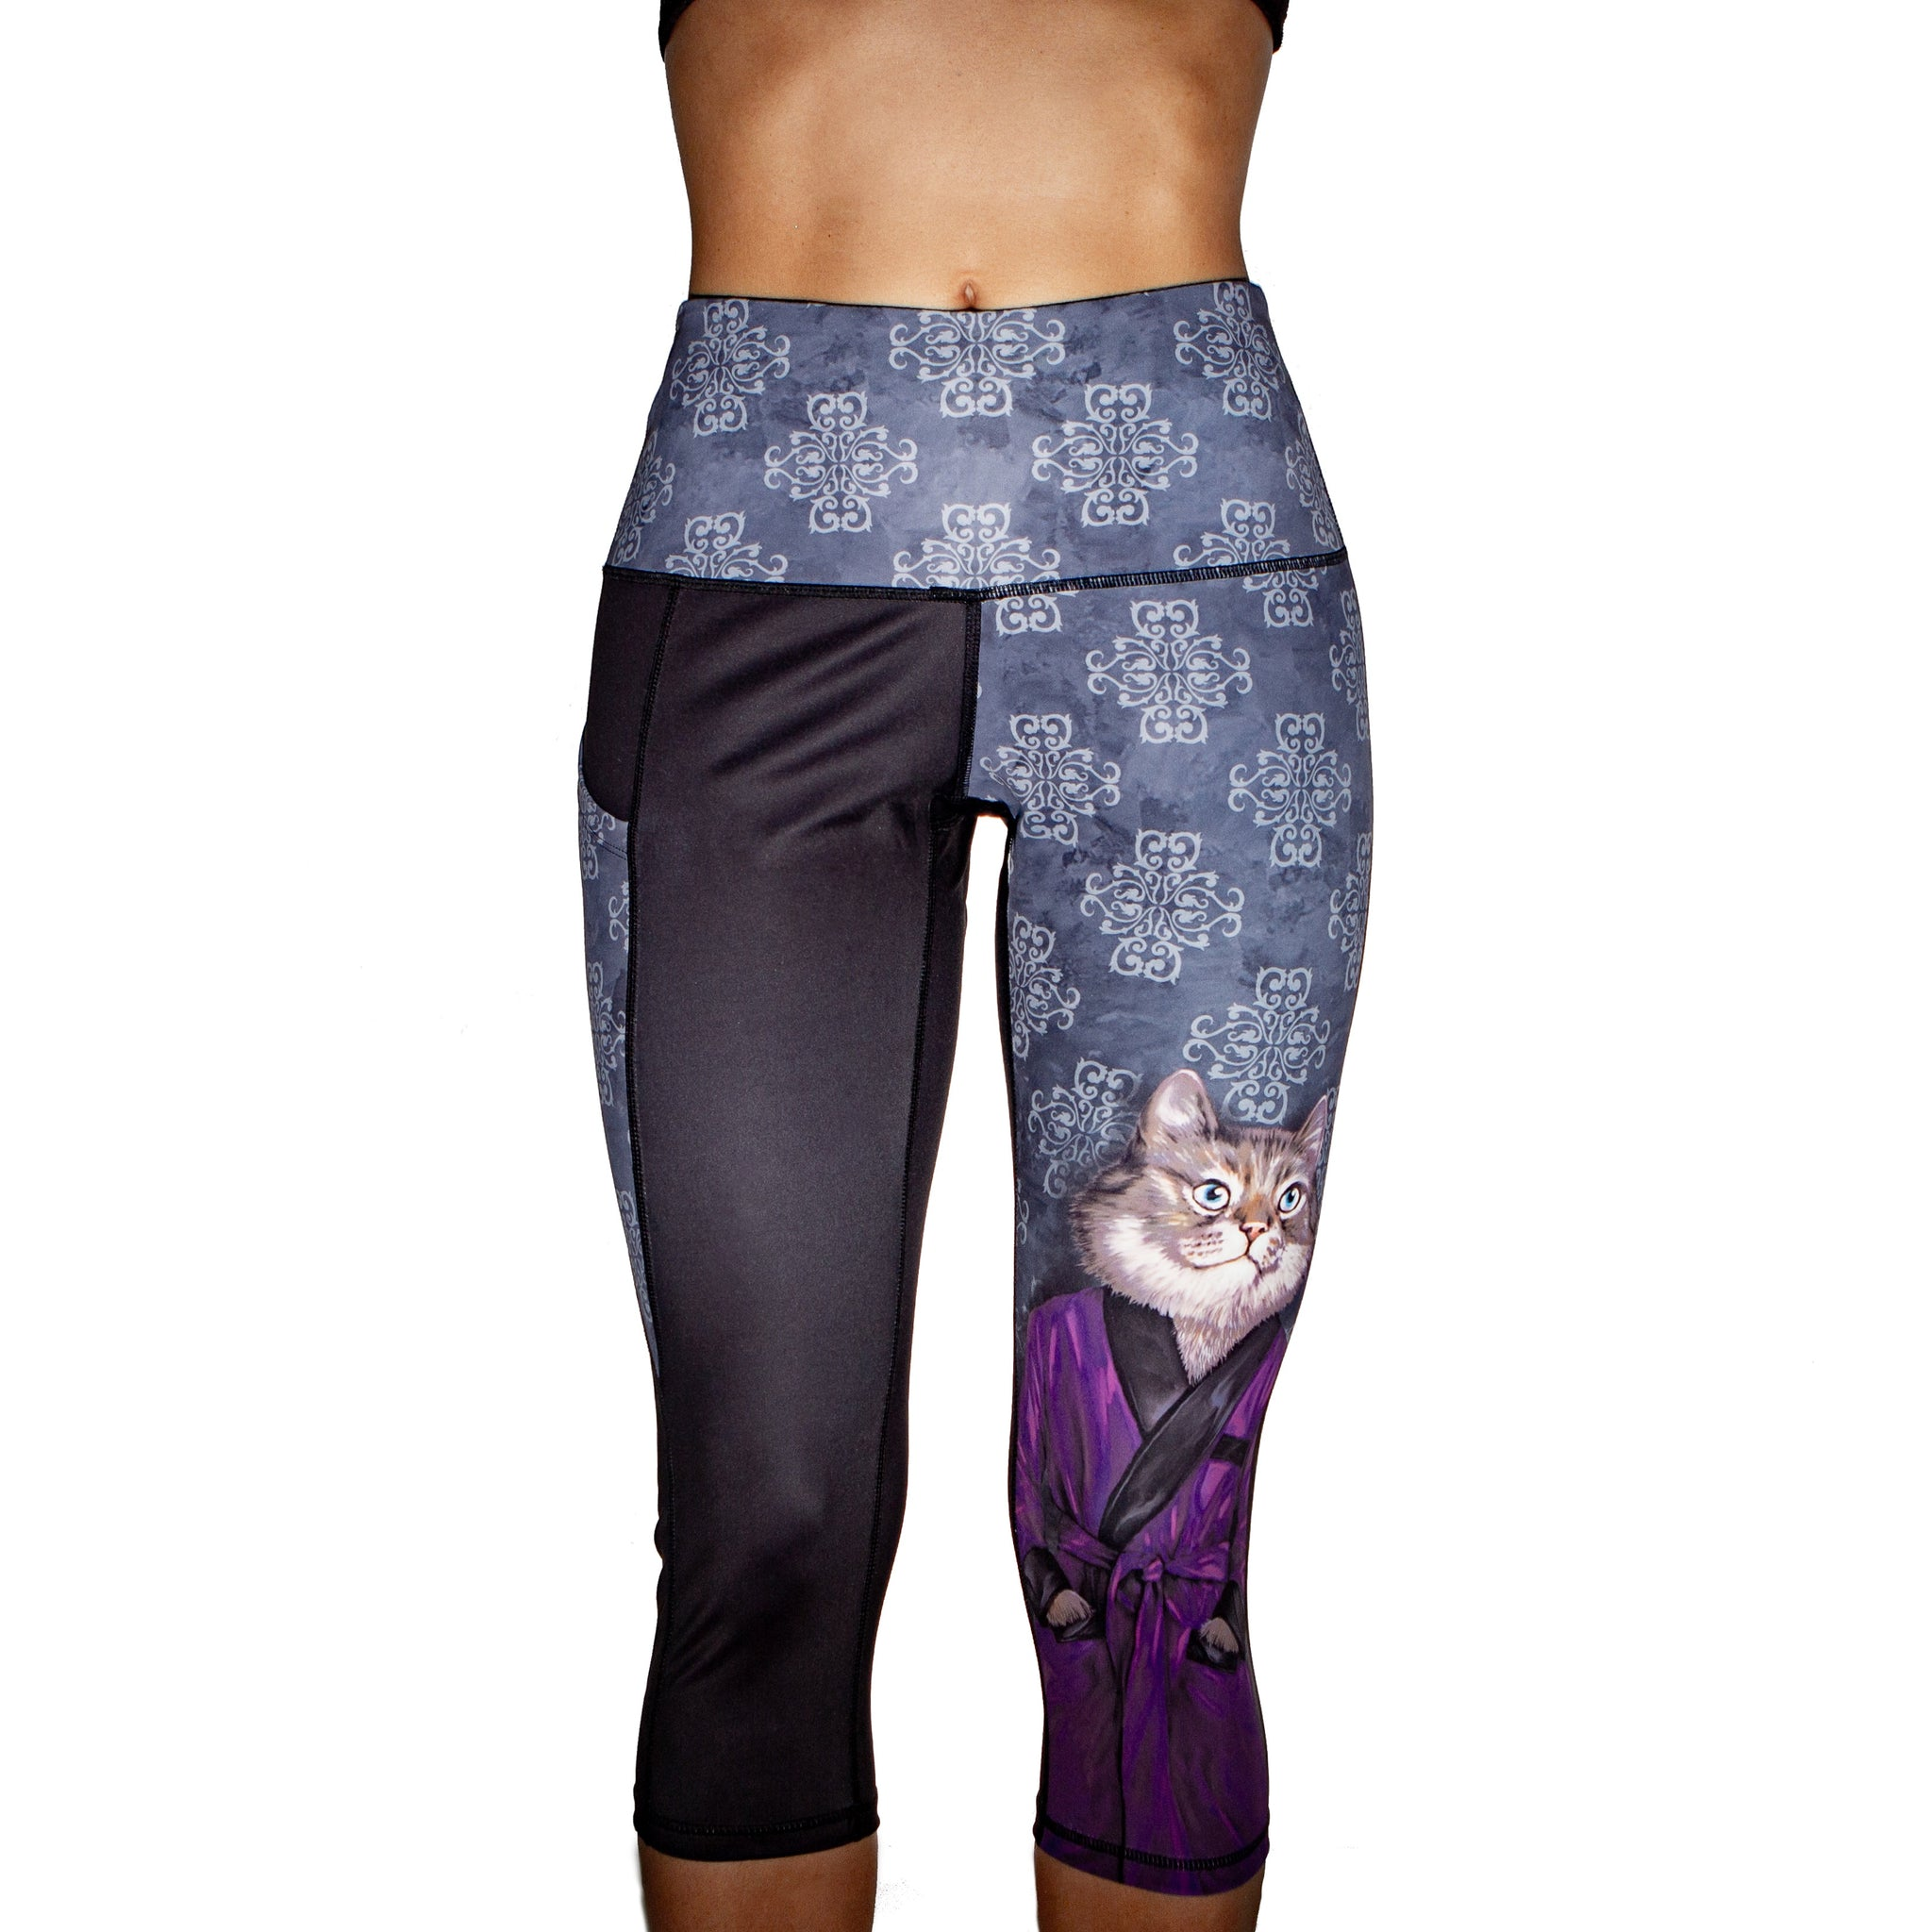 Year of the Cat Yoga Pants